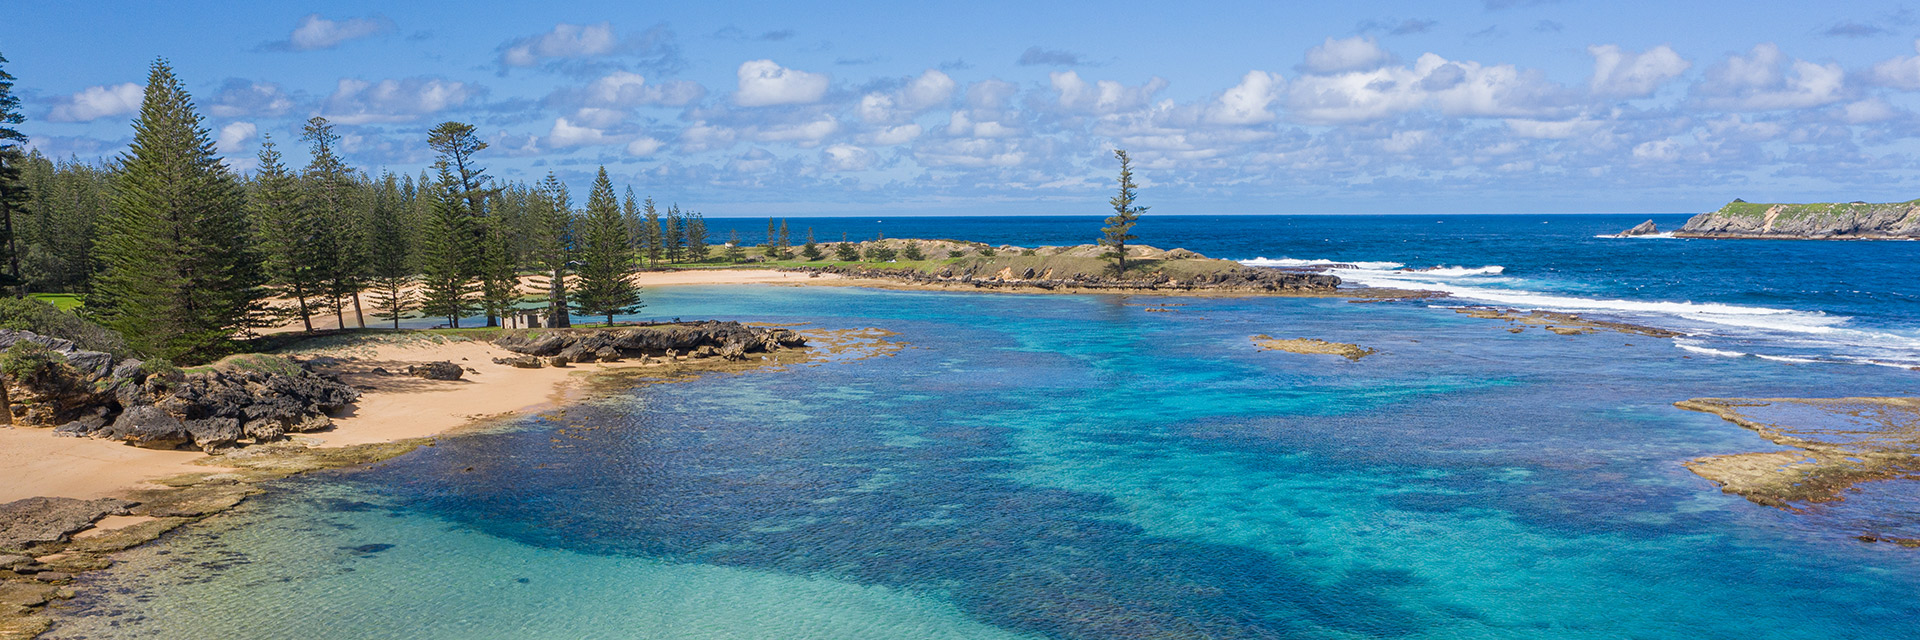 Shallow bay with coral and Norfolk Pine Trees on the shore.